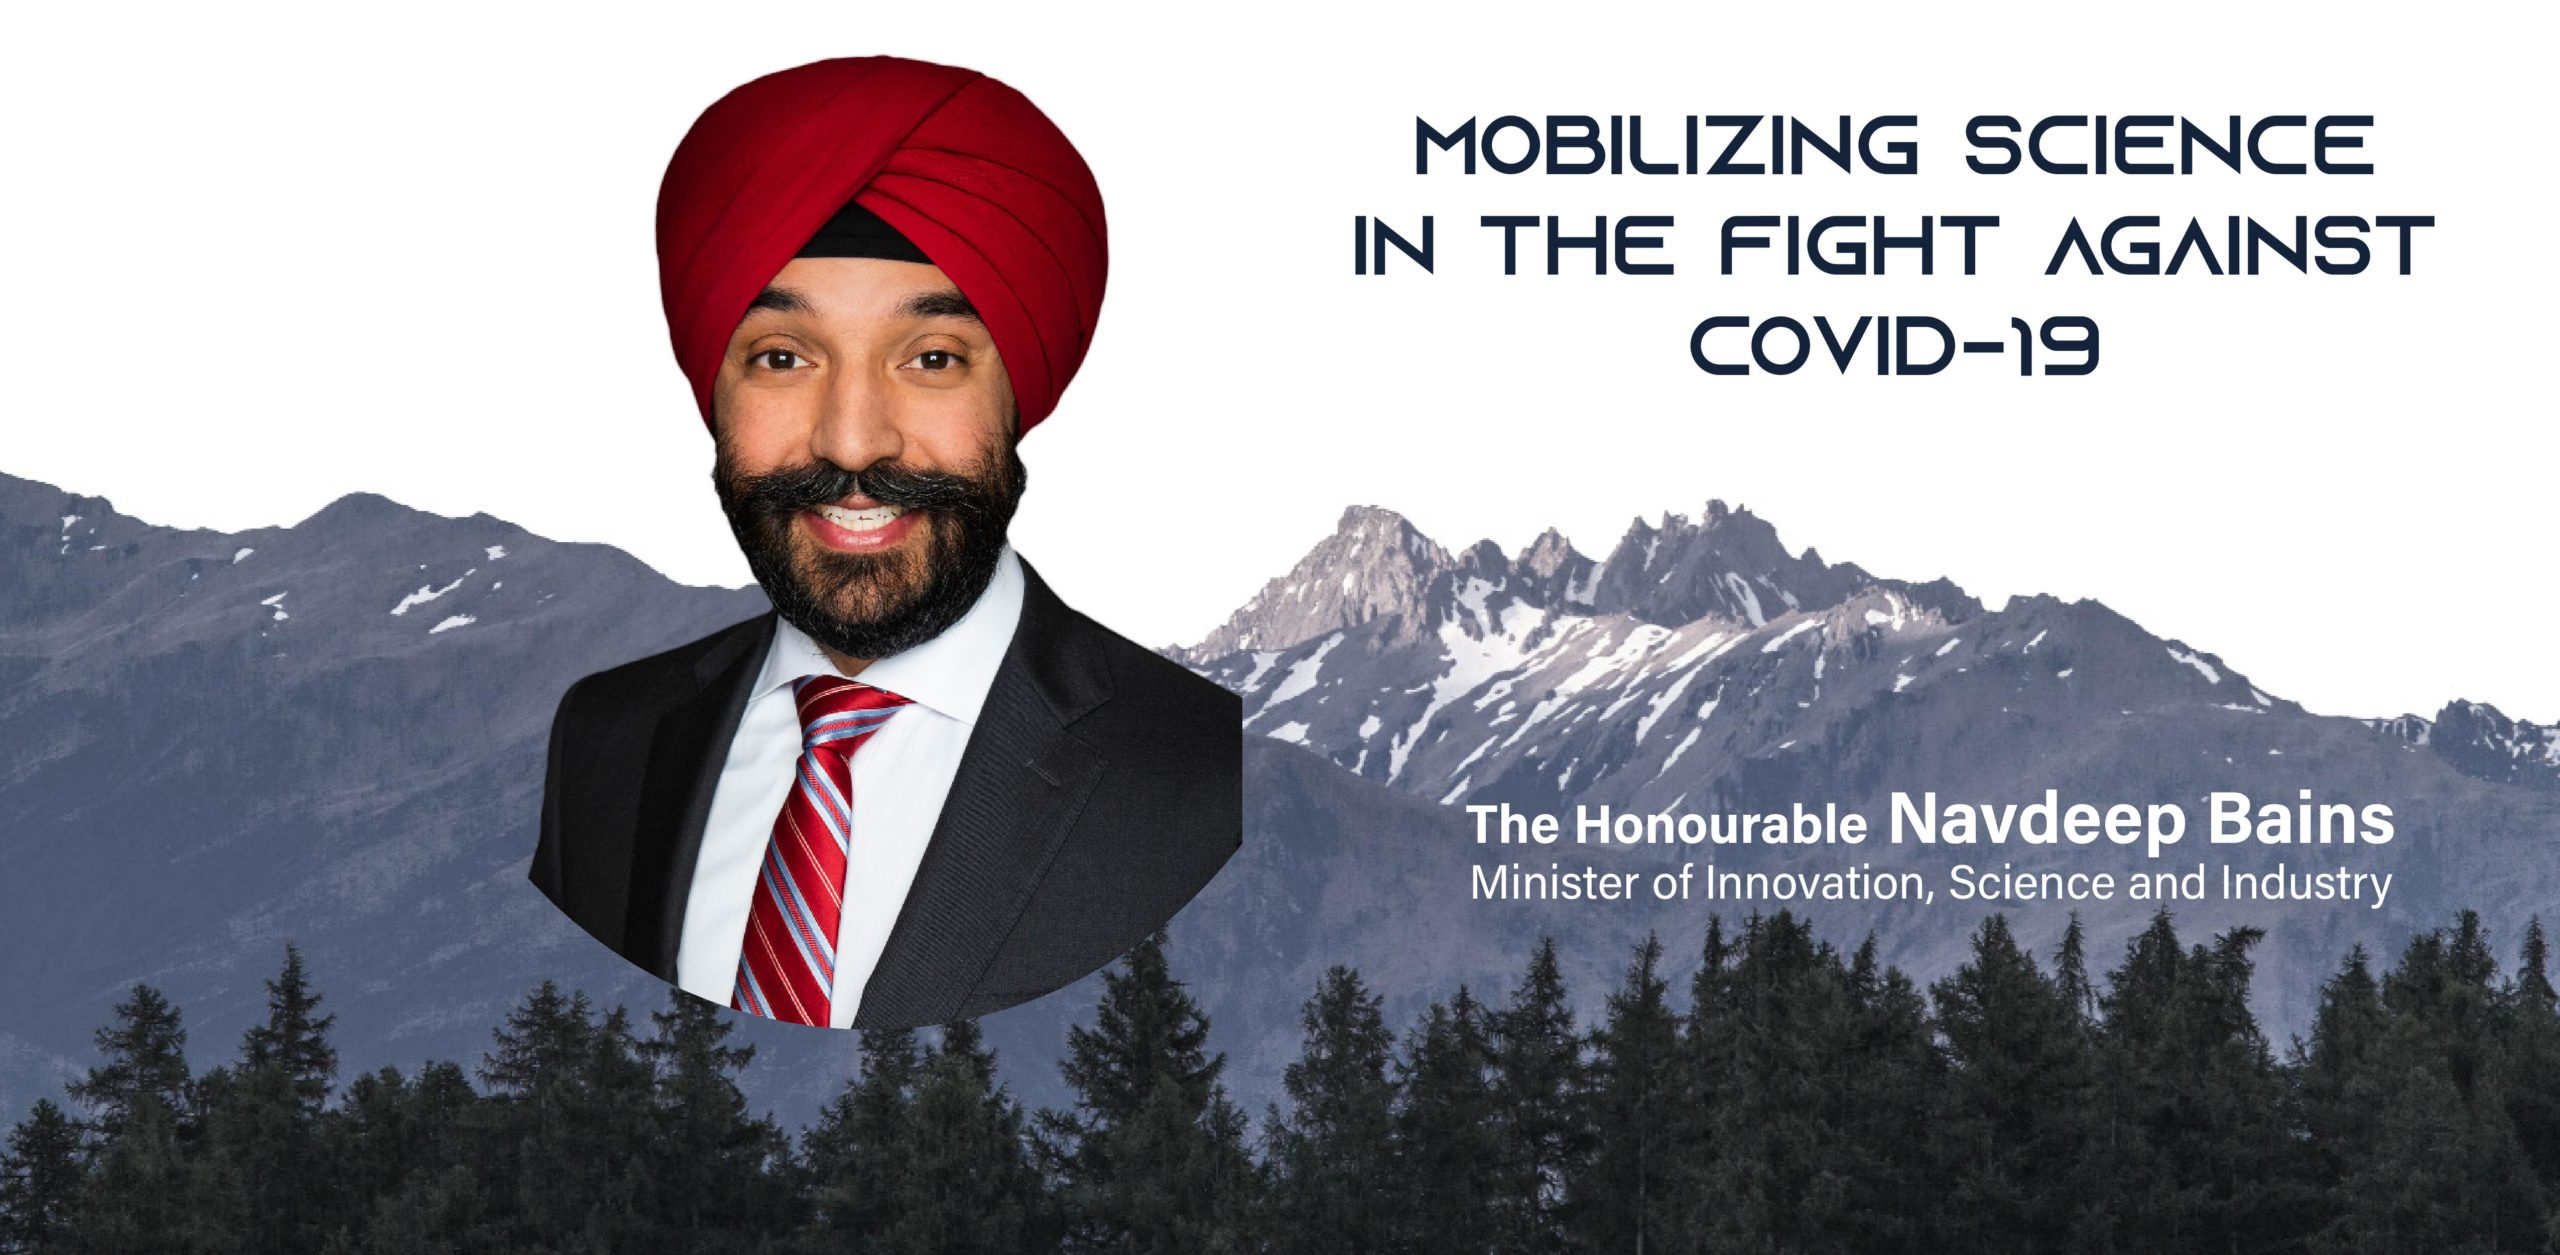 A picture of a Sikh man over a mountain landscape with the text: Mobilizing science in the fight against covid-19 The Honourable Navdeep Bains Minister of Innovation, Science and Industry